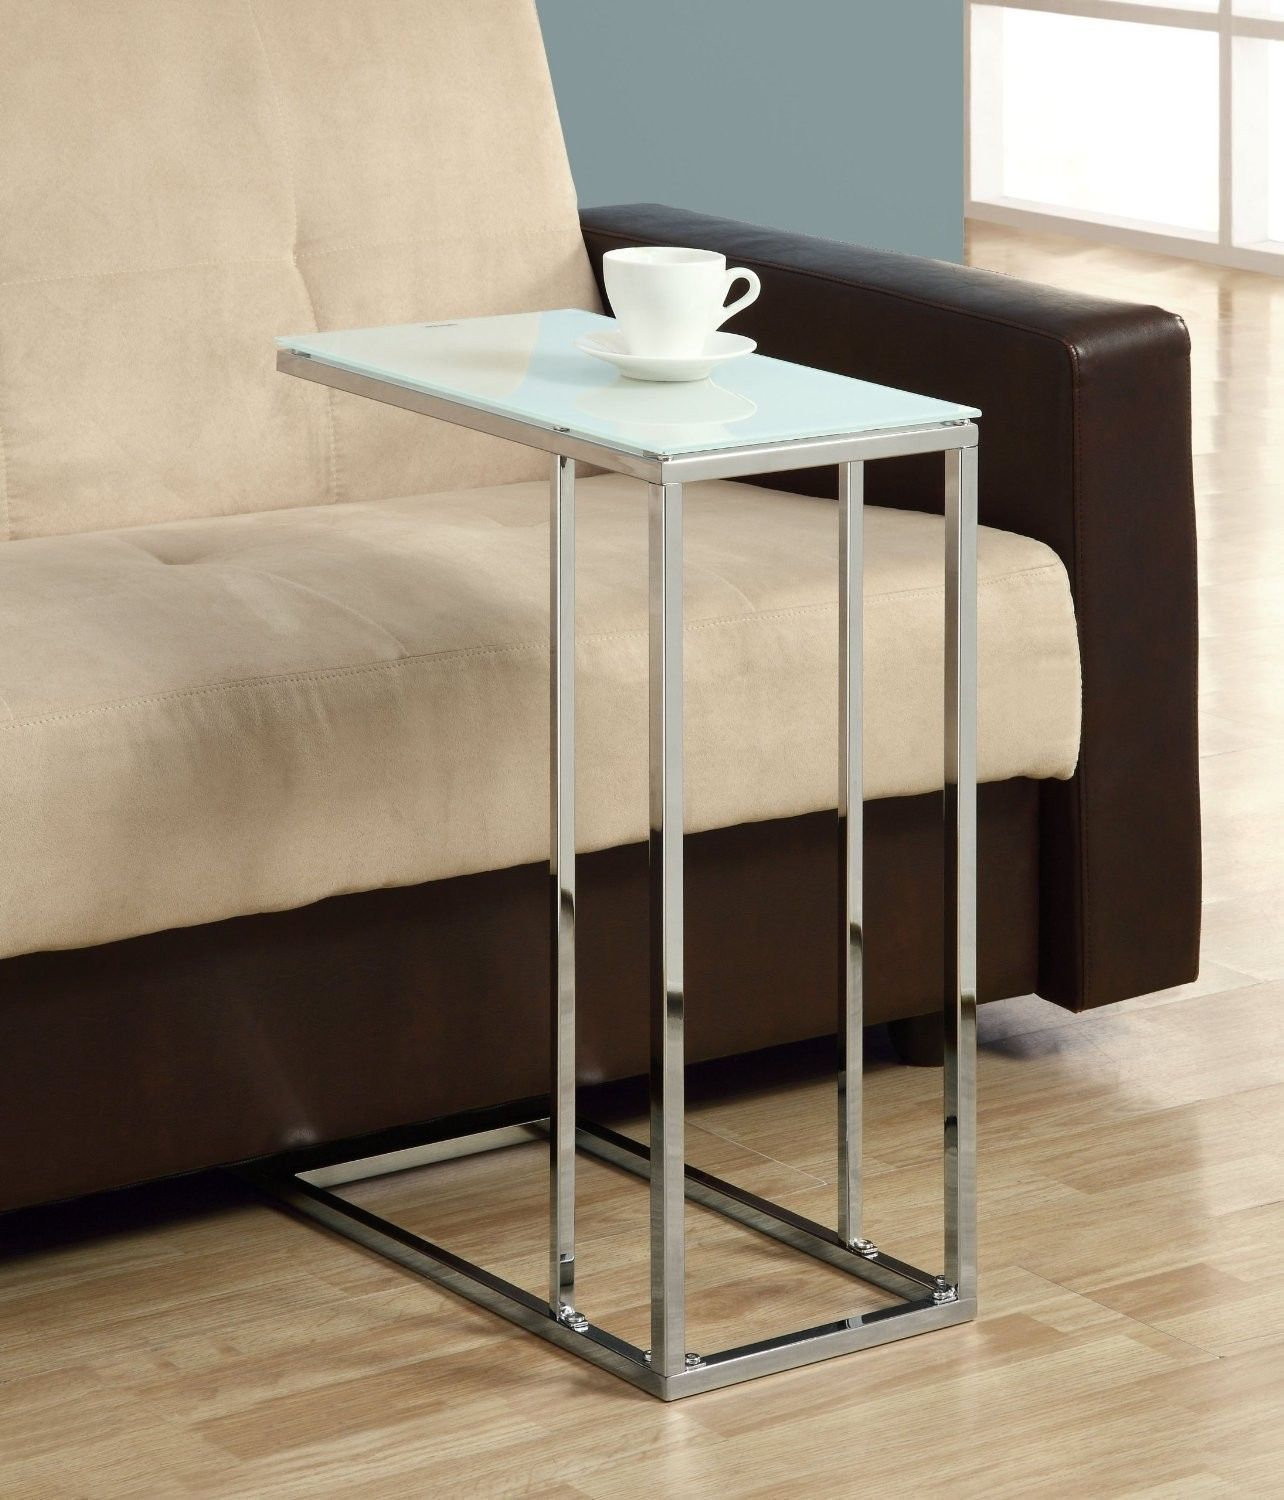 Snack Table Glass Top Chrome Base For Eating Coffee Tea Tv Coaster Contemporary